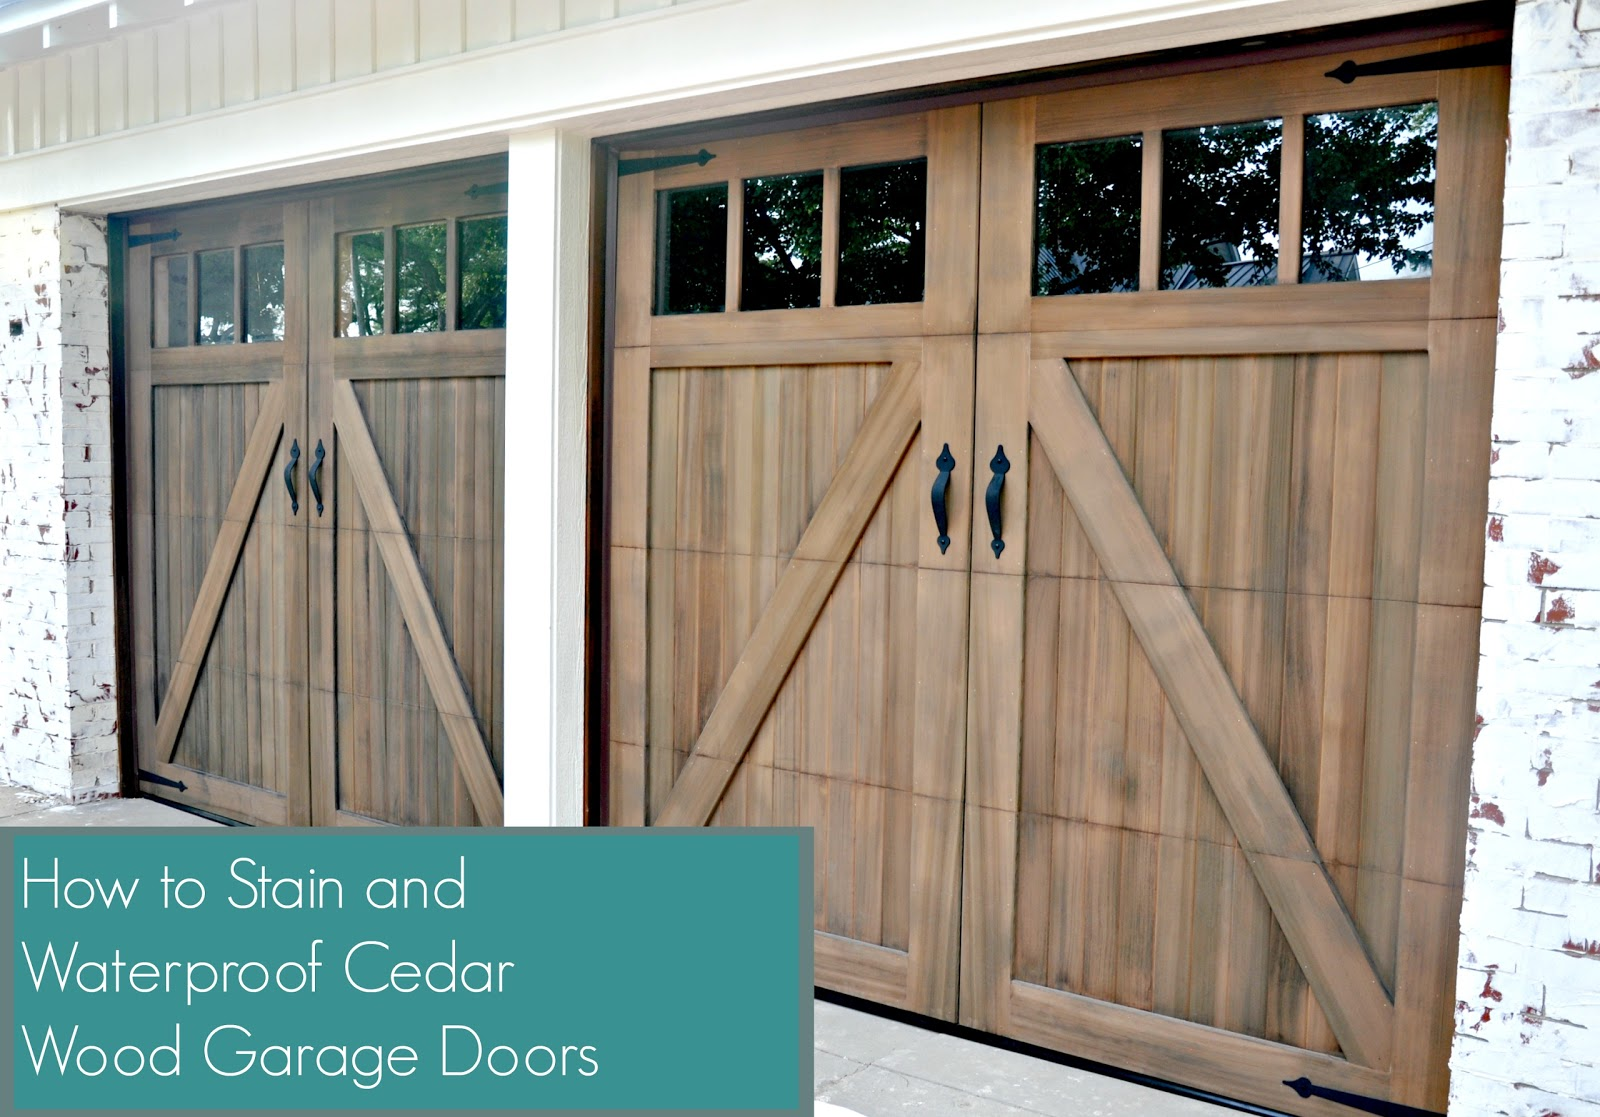 Today I\\u0027m Sharing A Quick Tutorial On How To Stain And Waterproof Cedar Wood Garage Doors. After I Spent Two Weekends Unsuccessfully Trying To Strip ... & Waterproofing Shed Doors \u0026 Door-features-5 Pezcame.Com